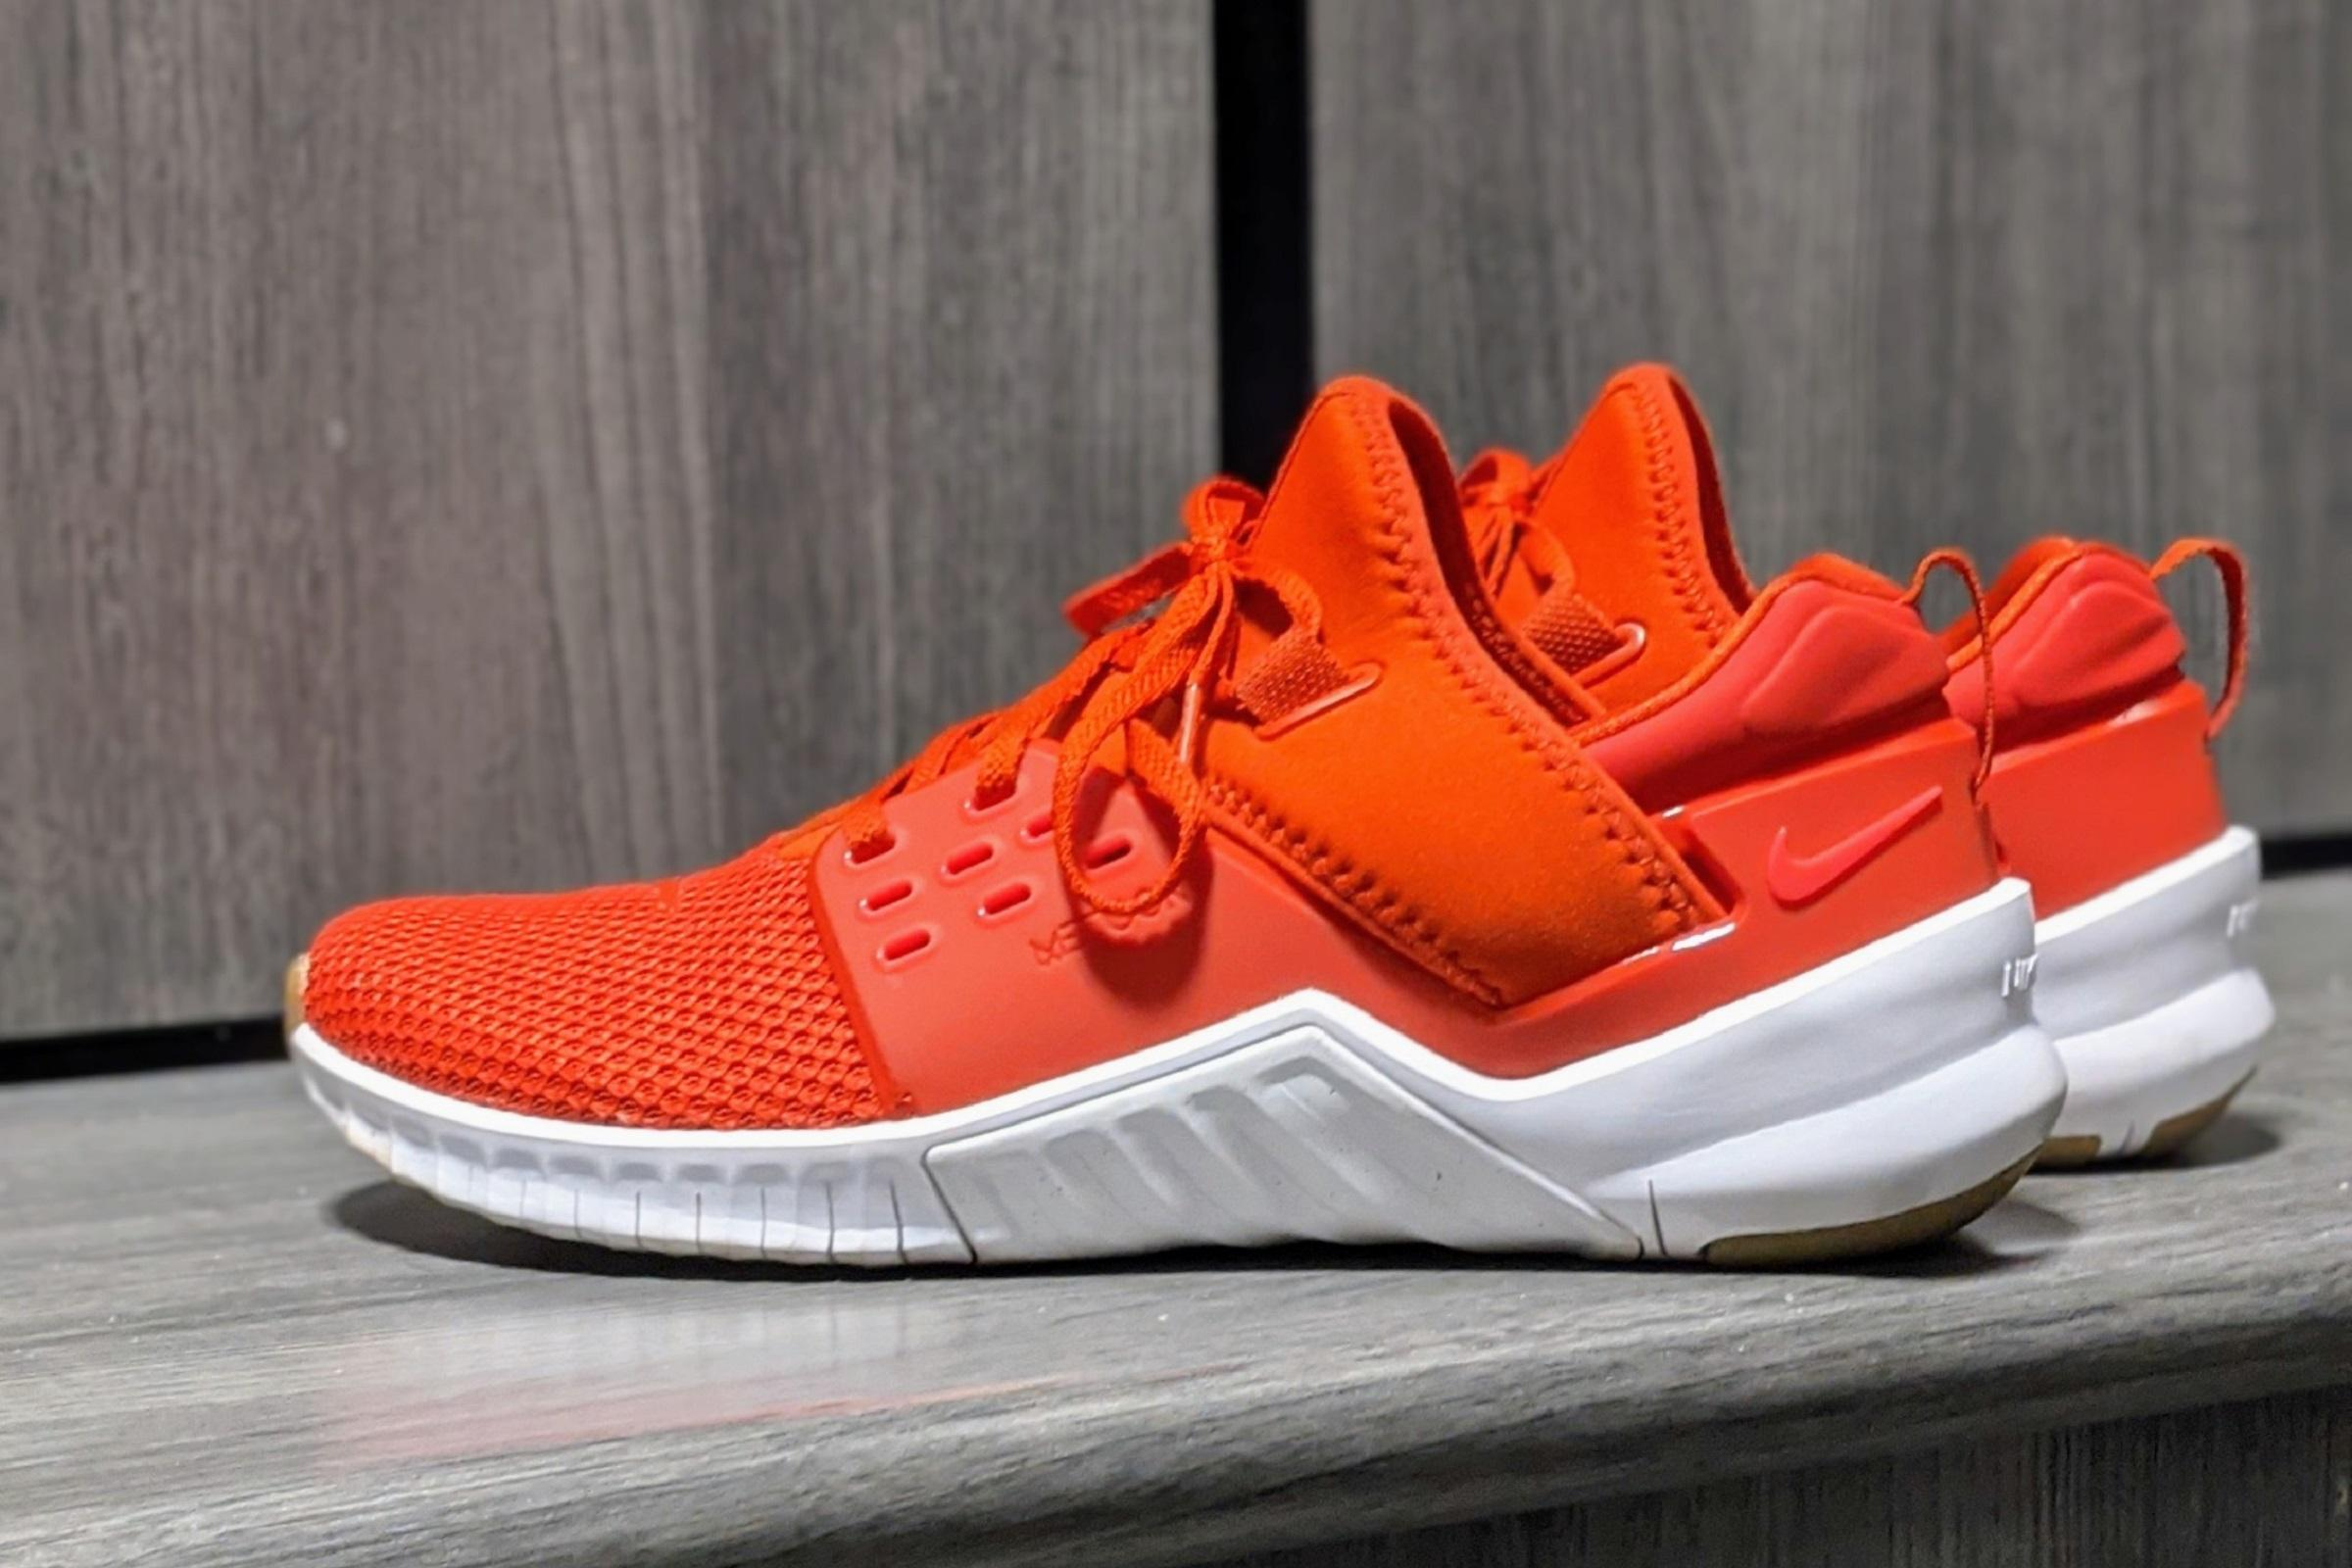 10 Best Workout Shoes in 2021